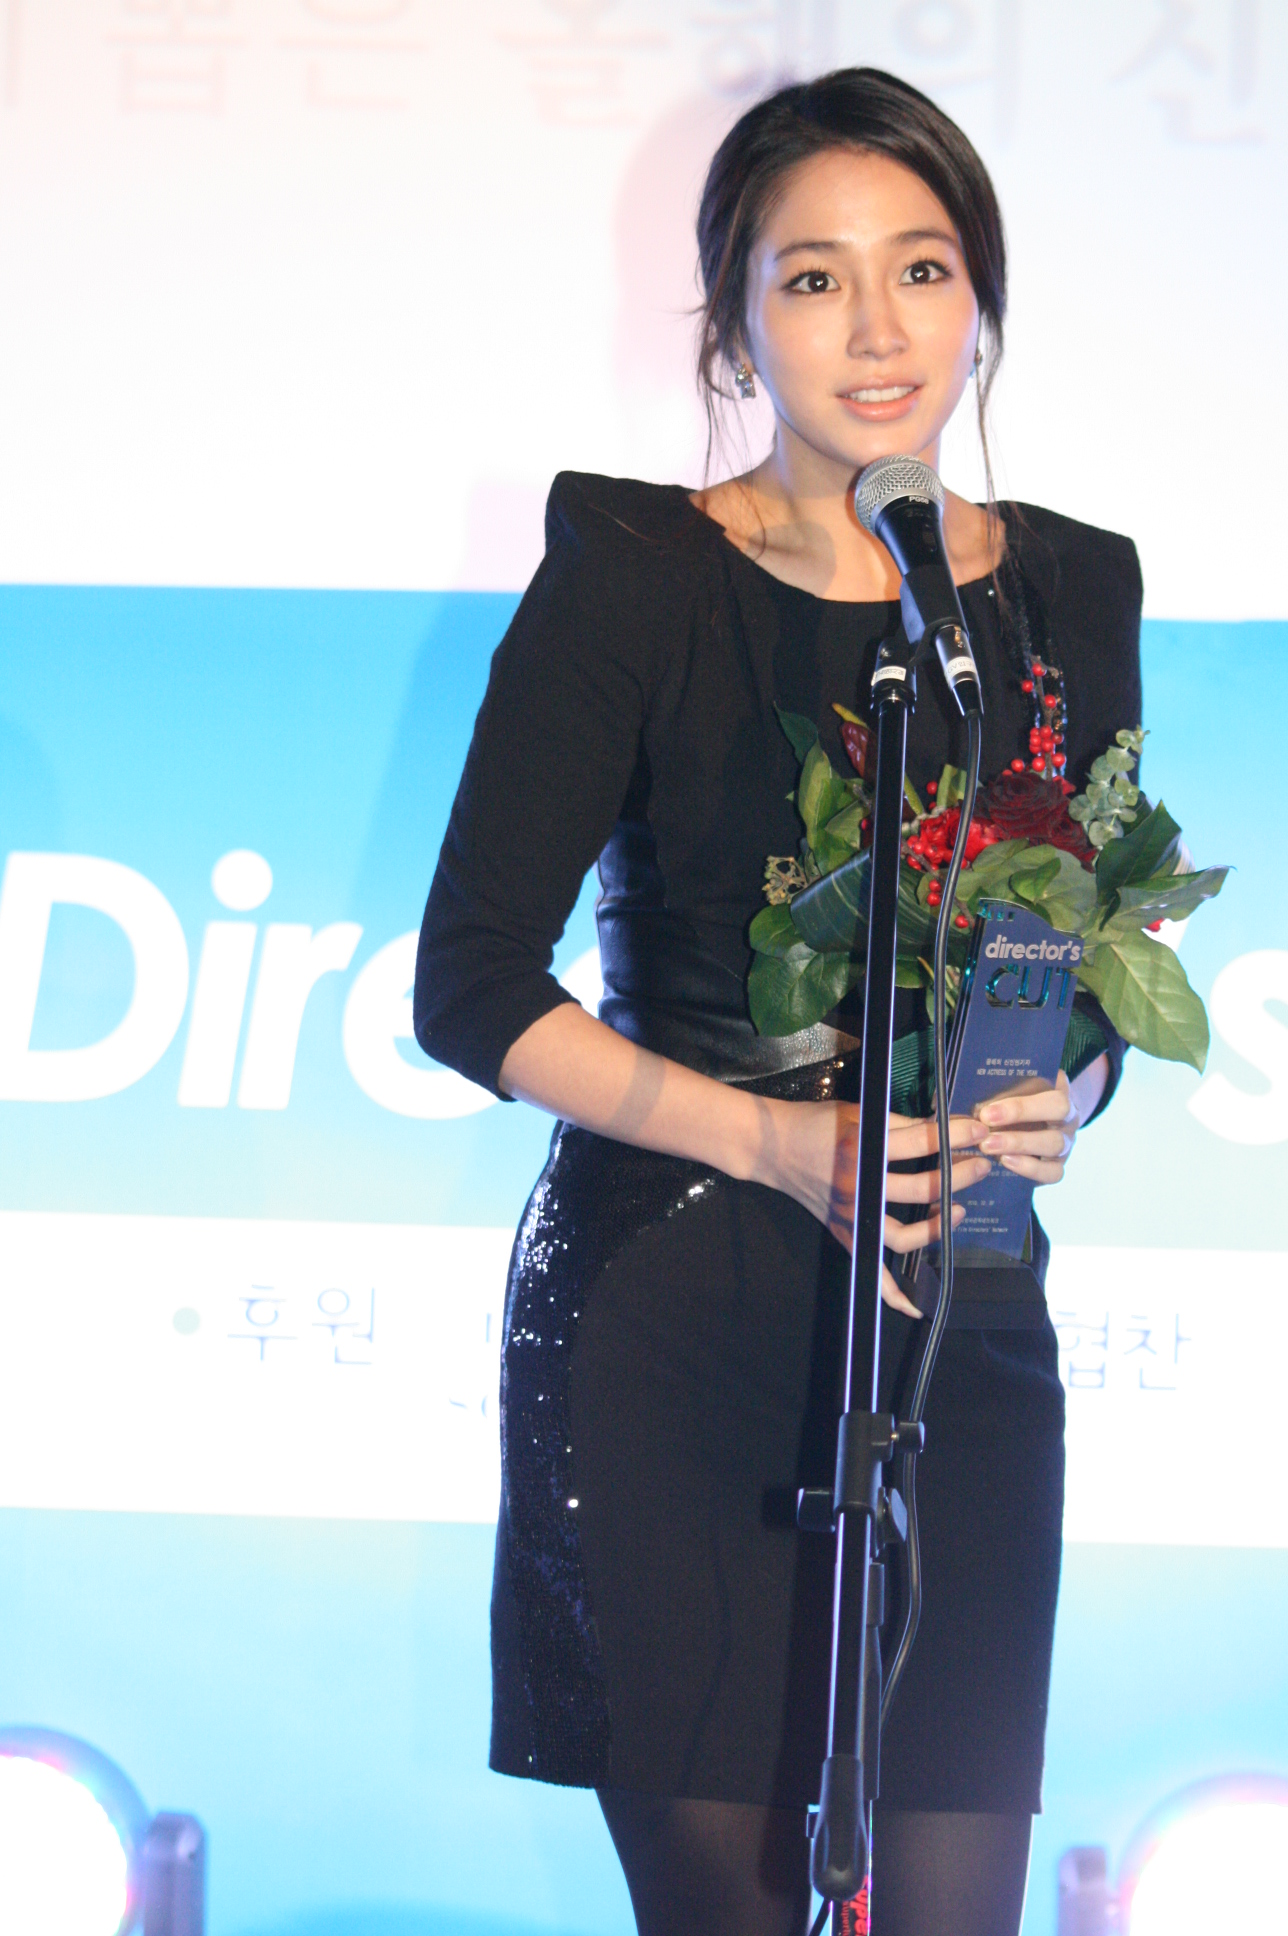 http://upload.wikimedia.org/wikipedia/commons/3/30/Lee_Min-Jung_in_2010.jpg